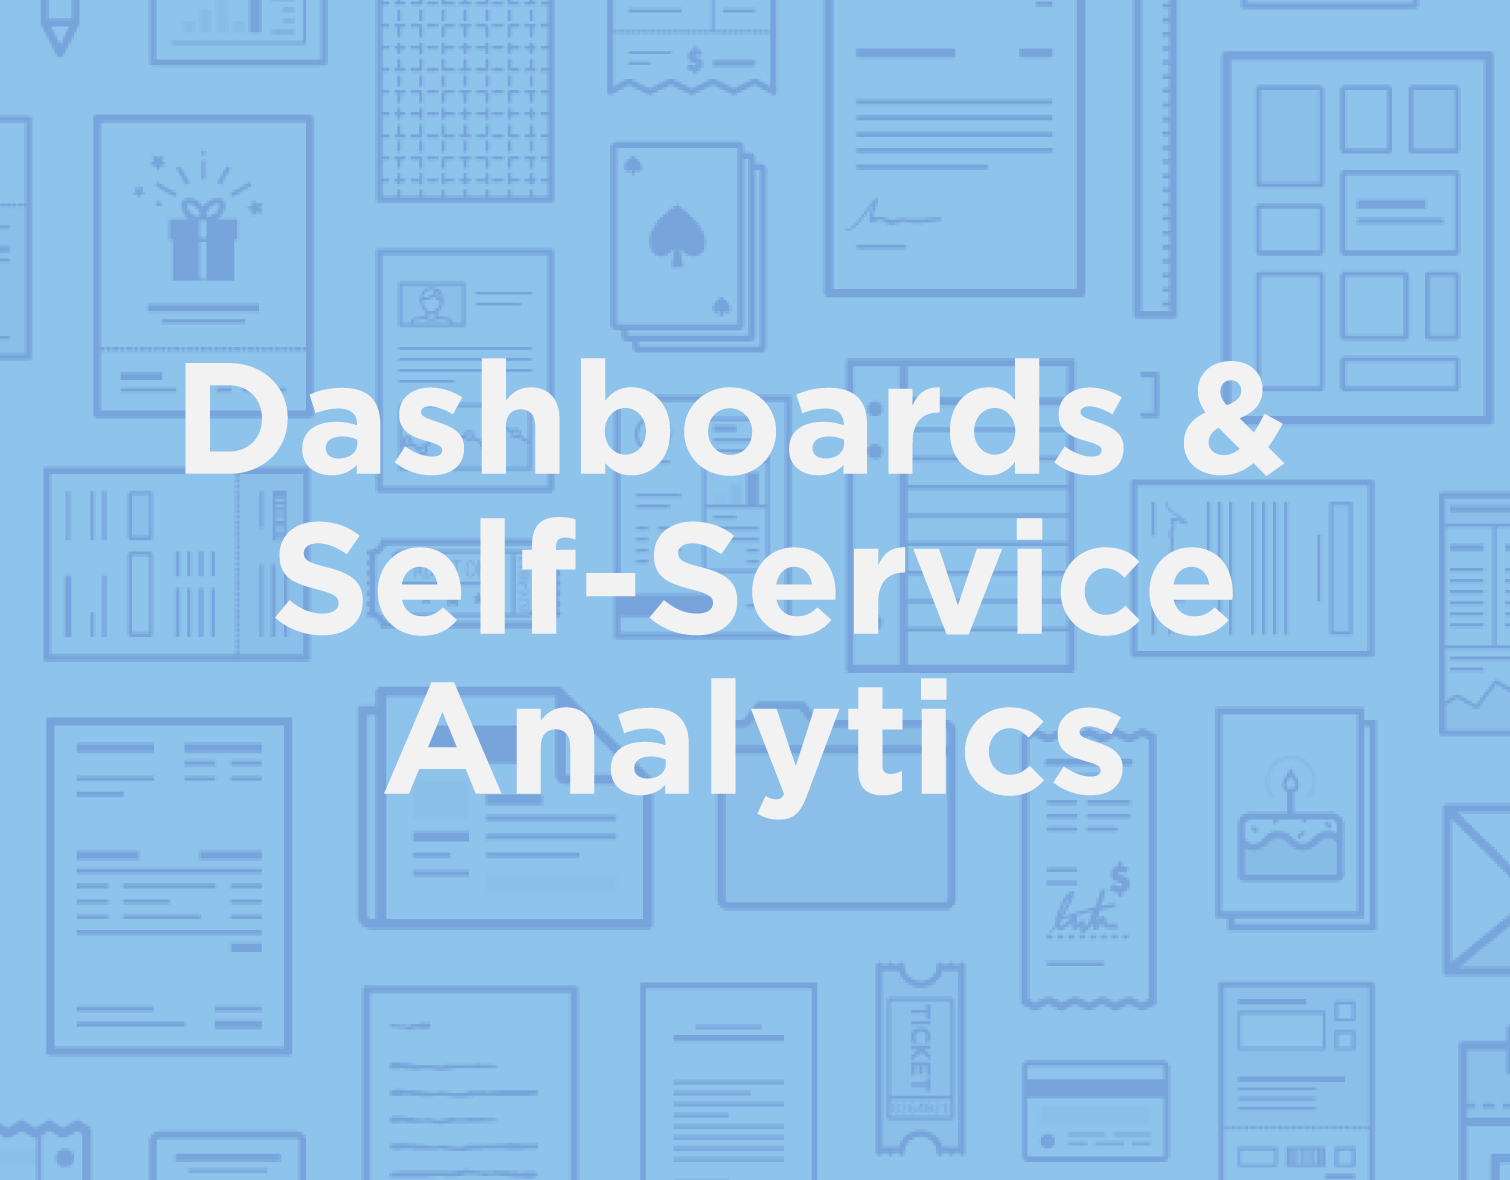 icon_products_Dashboards_&_Self-Serivce_Analytics_selected.jpg